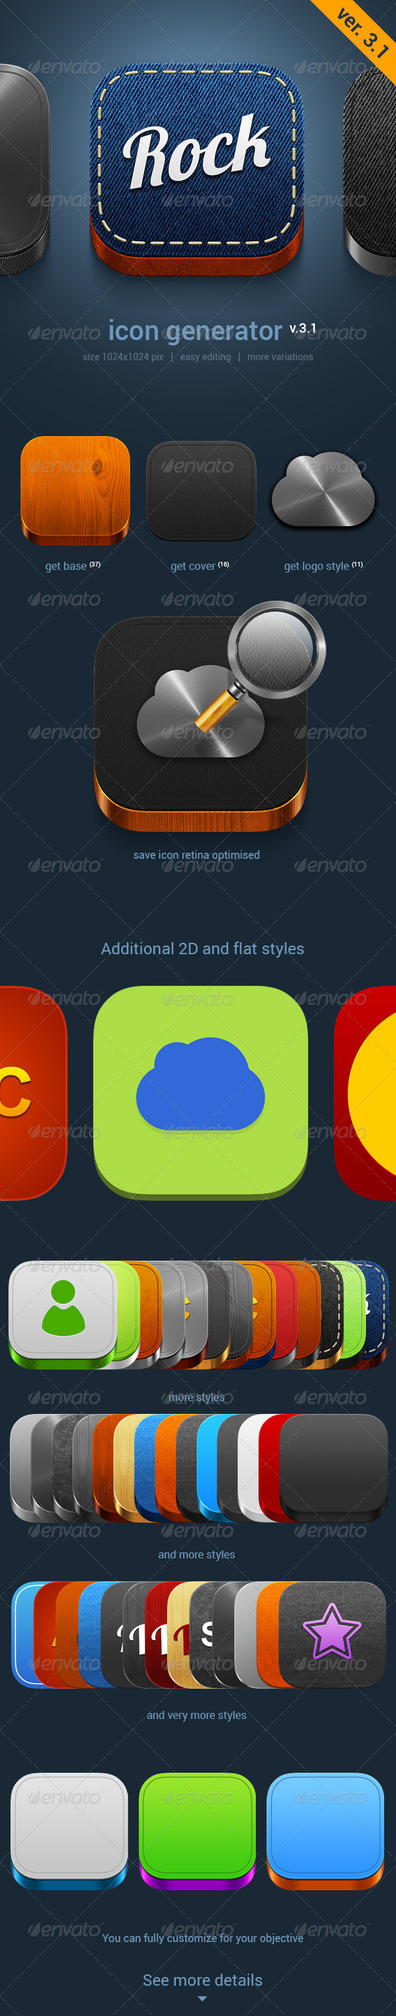 Icon Generator V.3.1 by LuxAeternaDesign